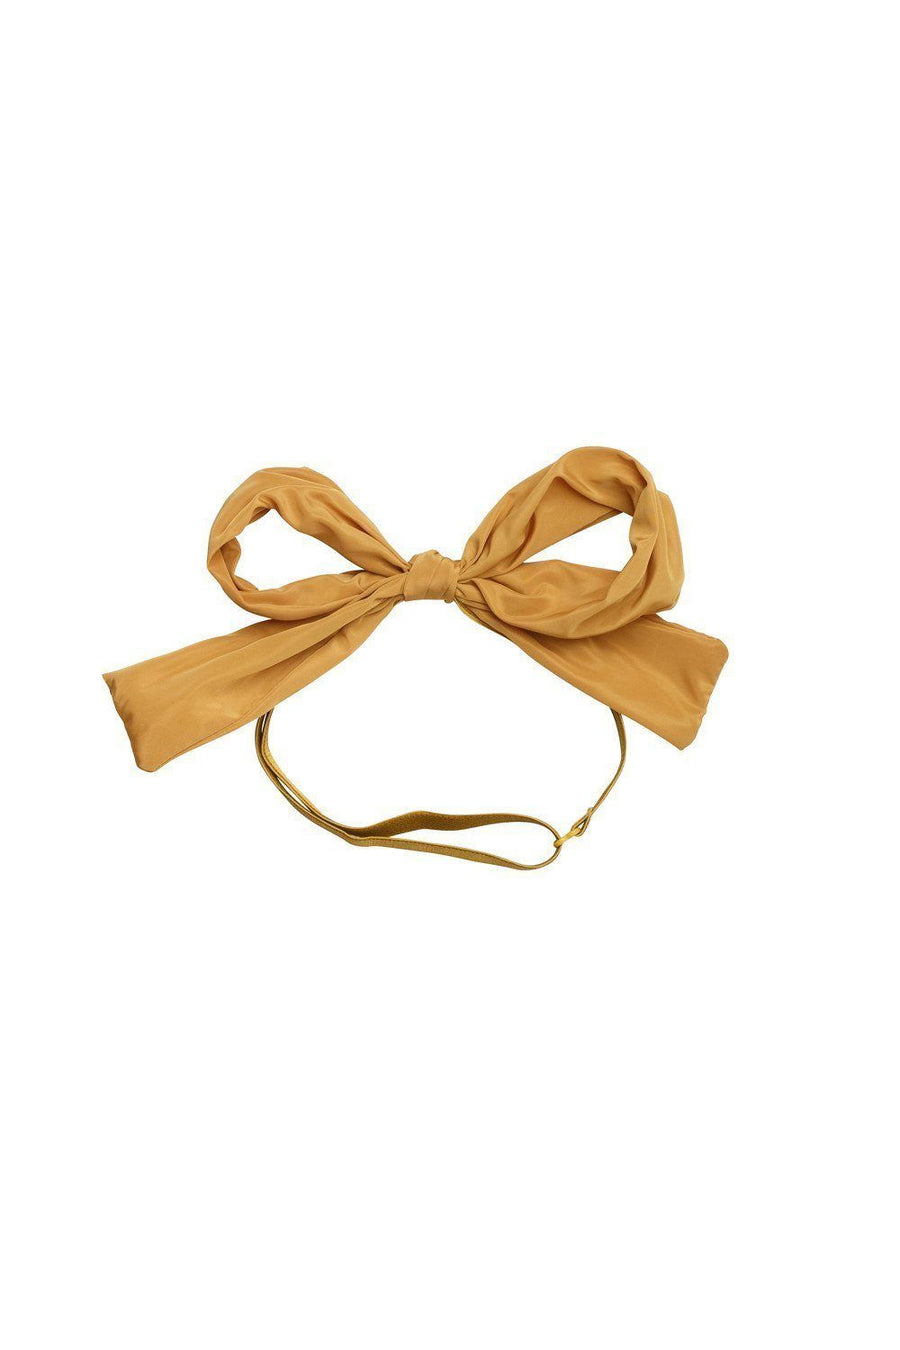 Party Bow Taffeta Wrap - Mustard - PROJECT 6, modest fashion